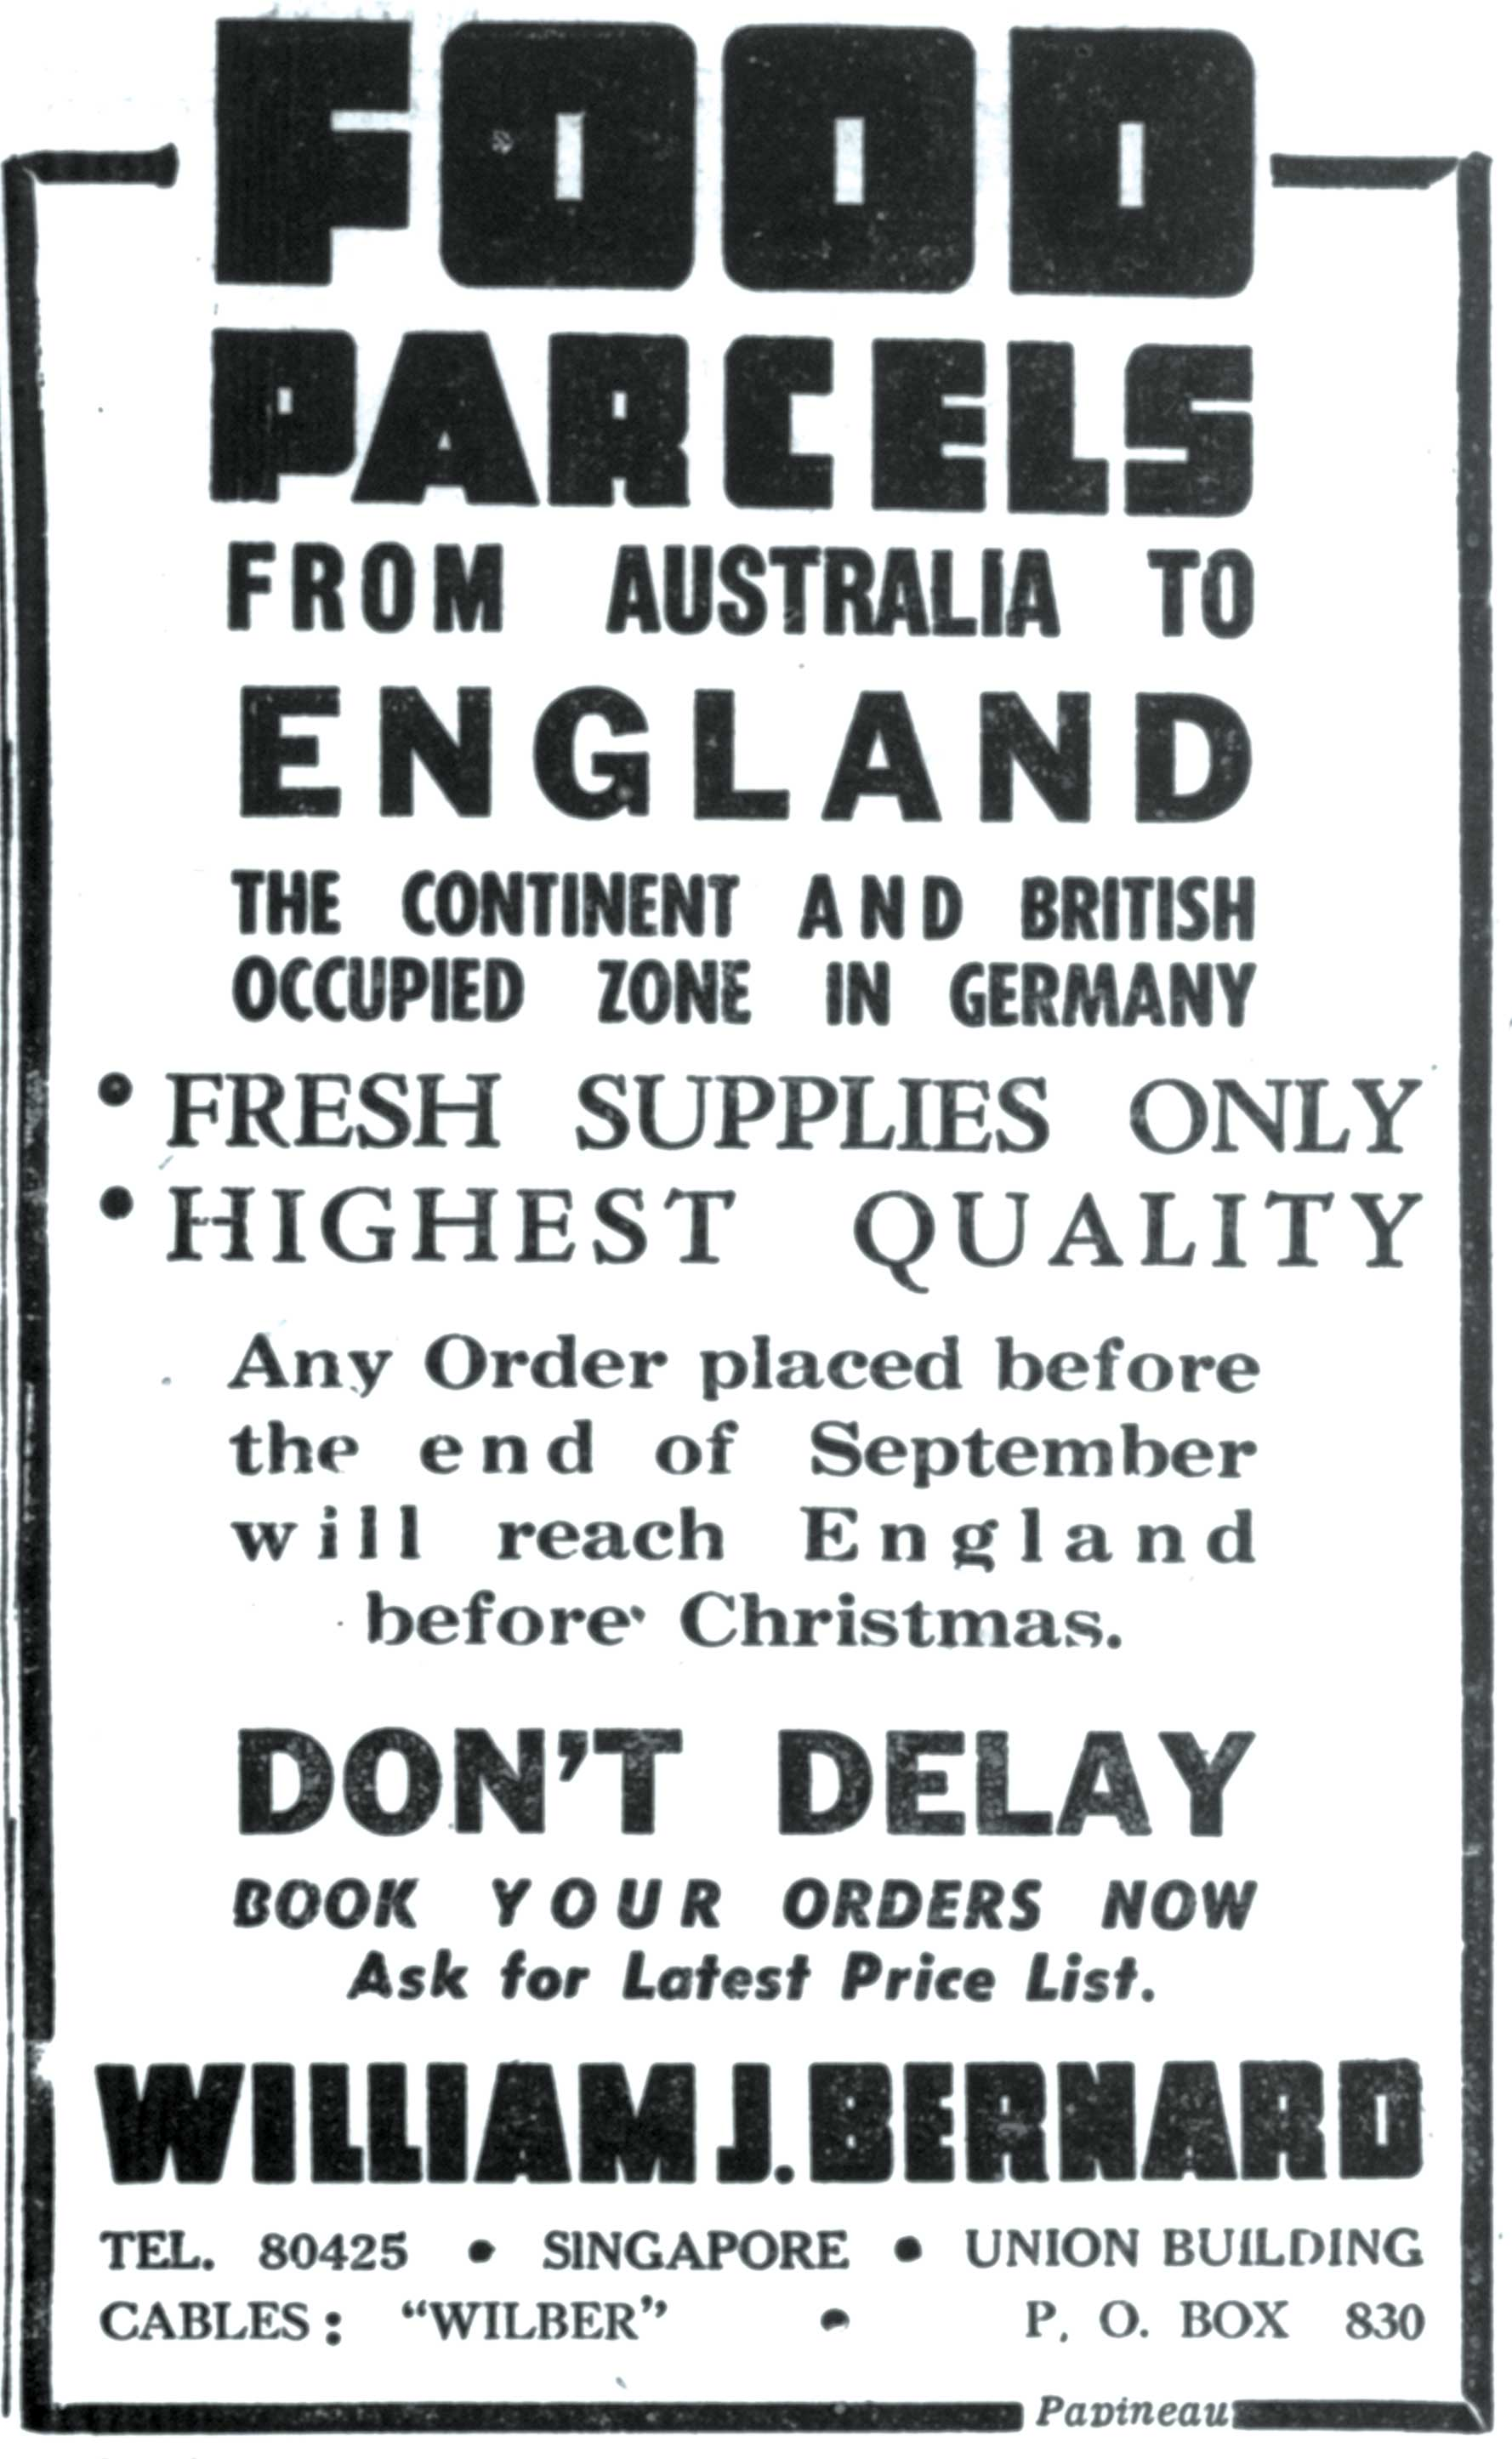 Selling Dreams: Early Advertising In Singapore